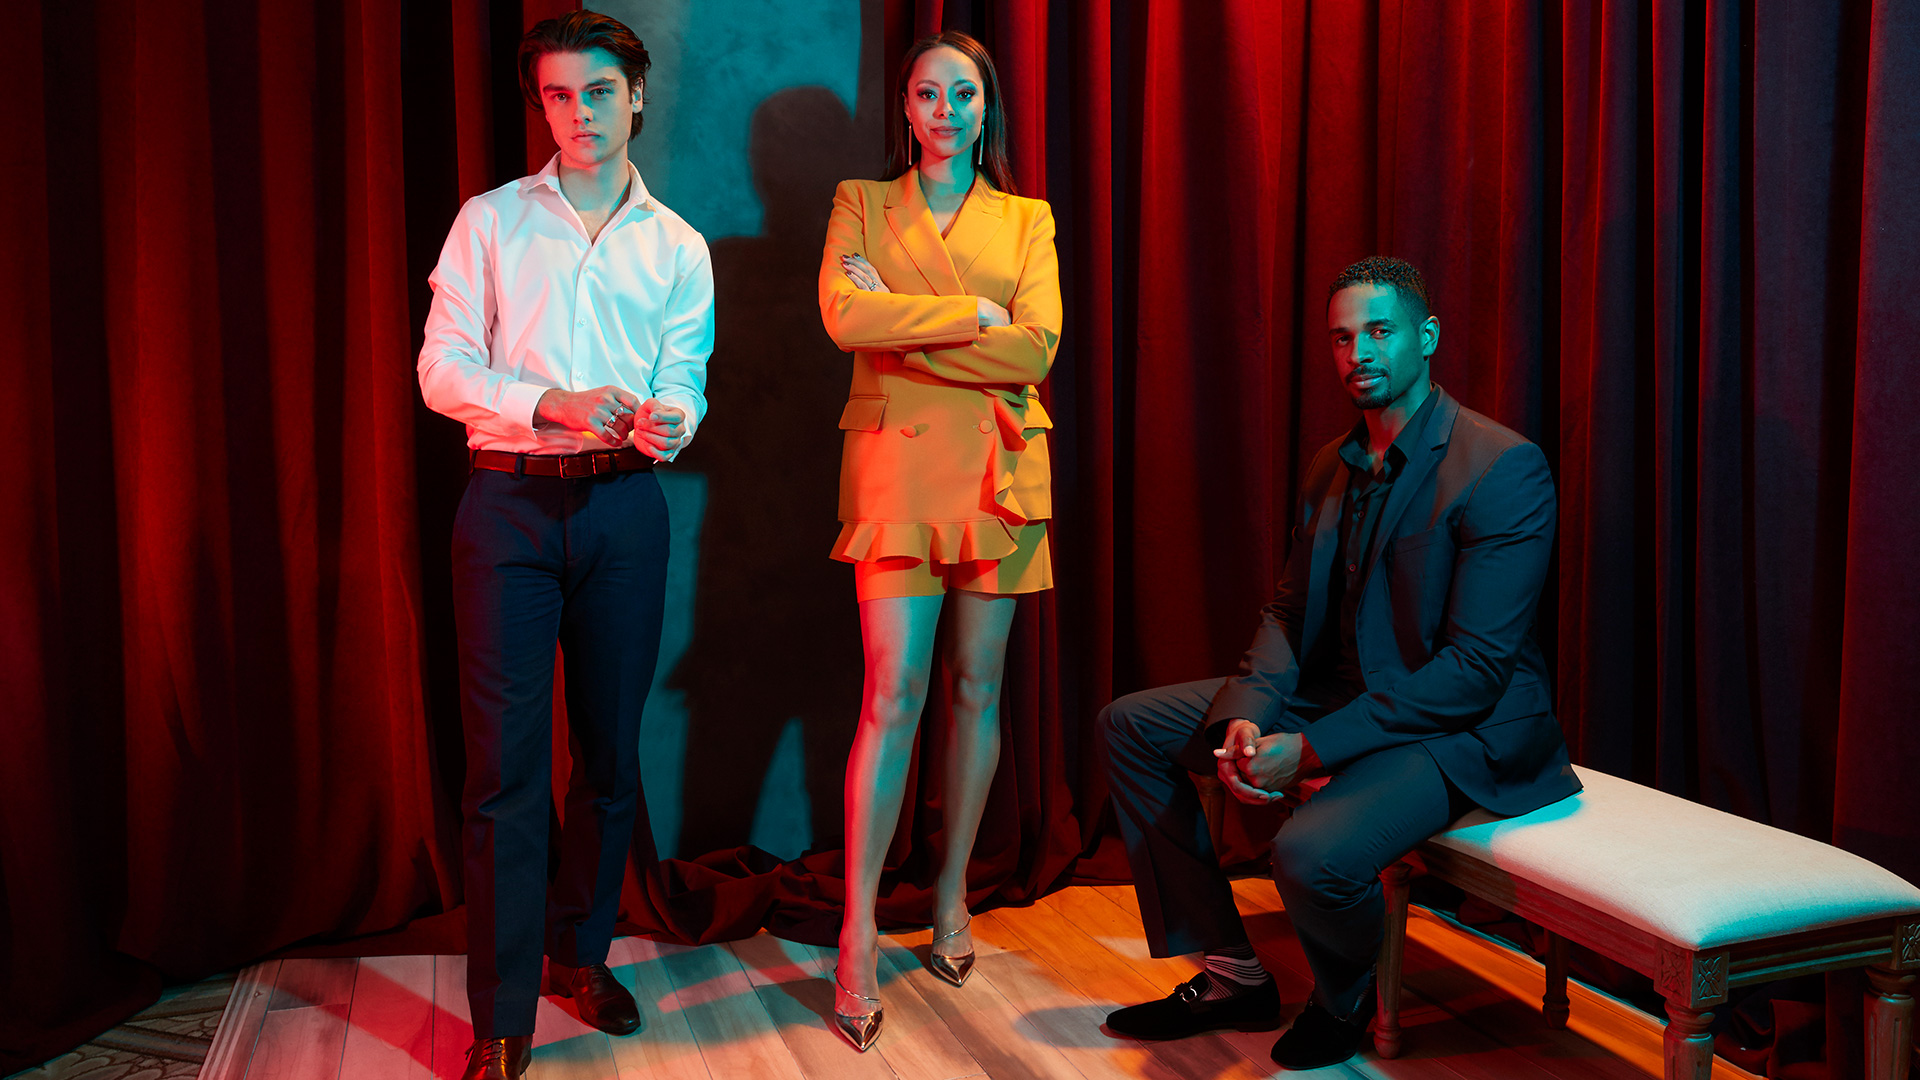 The fabulous faces of CBS's new Fall shows